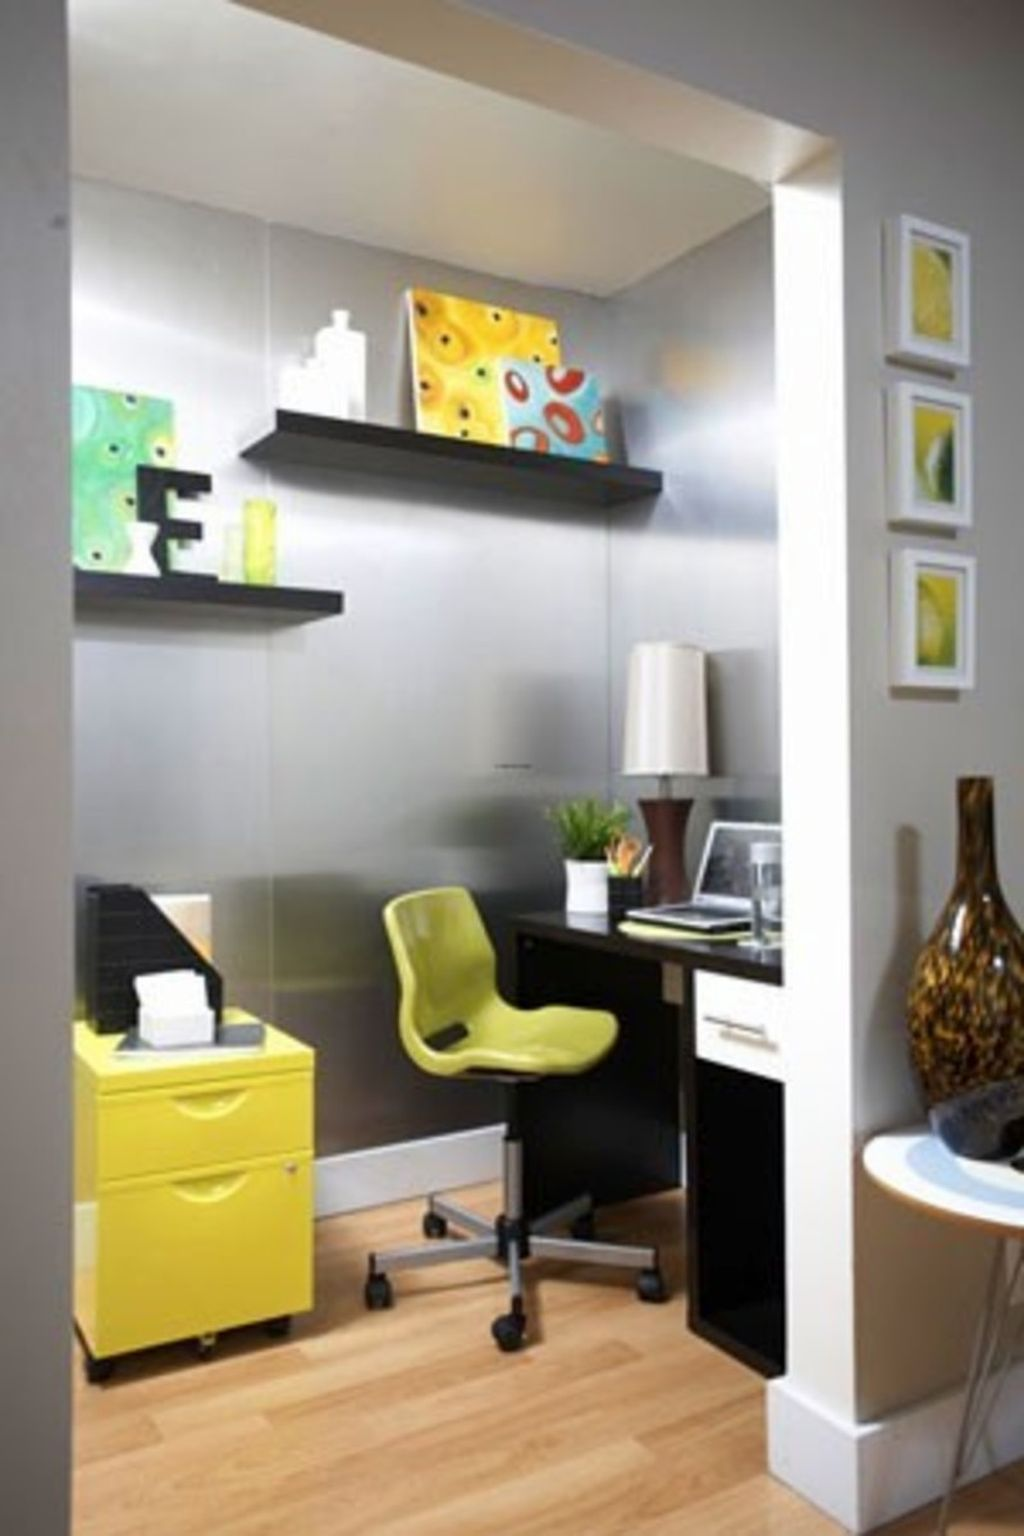 20 inspiring home office design ideas for small spaces - Small space decorating blog decor ...